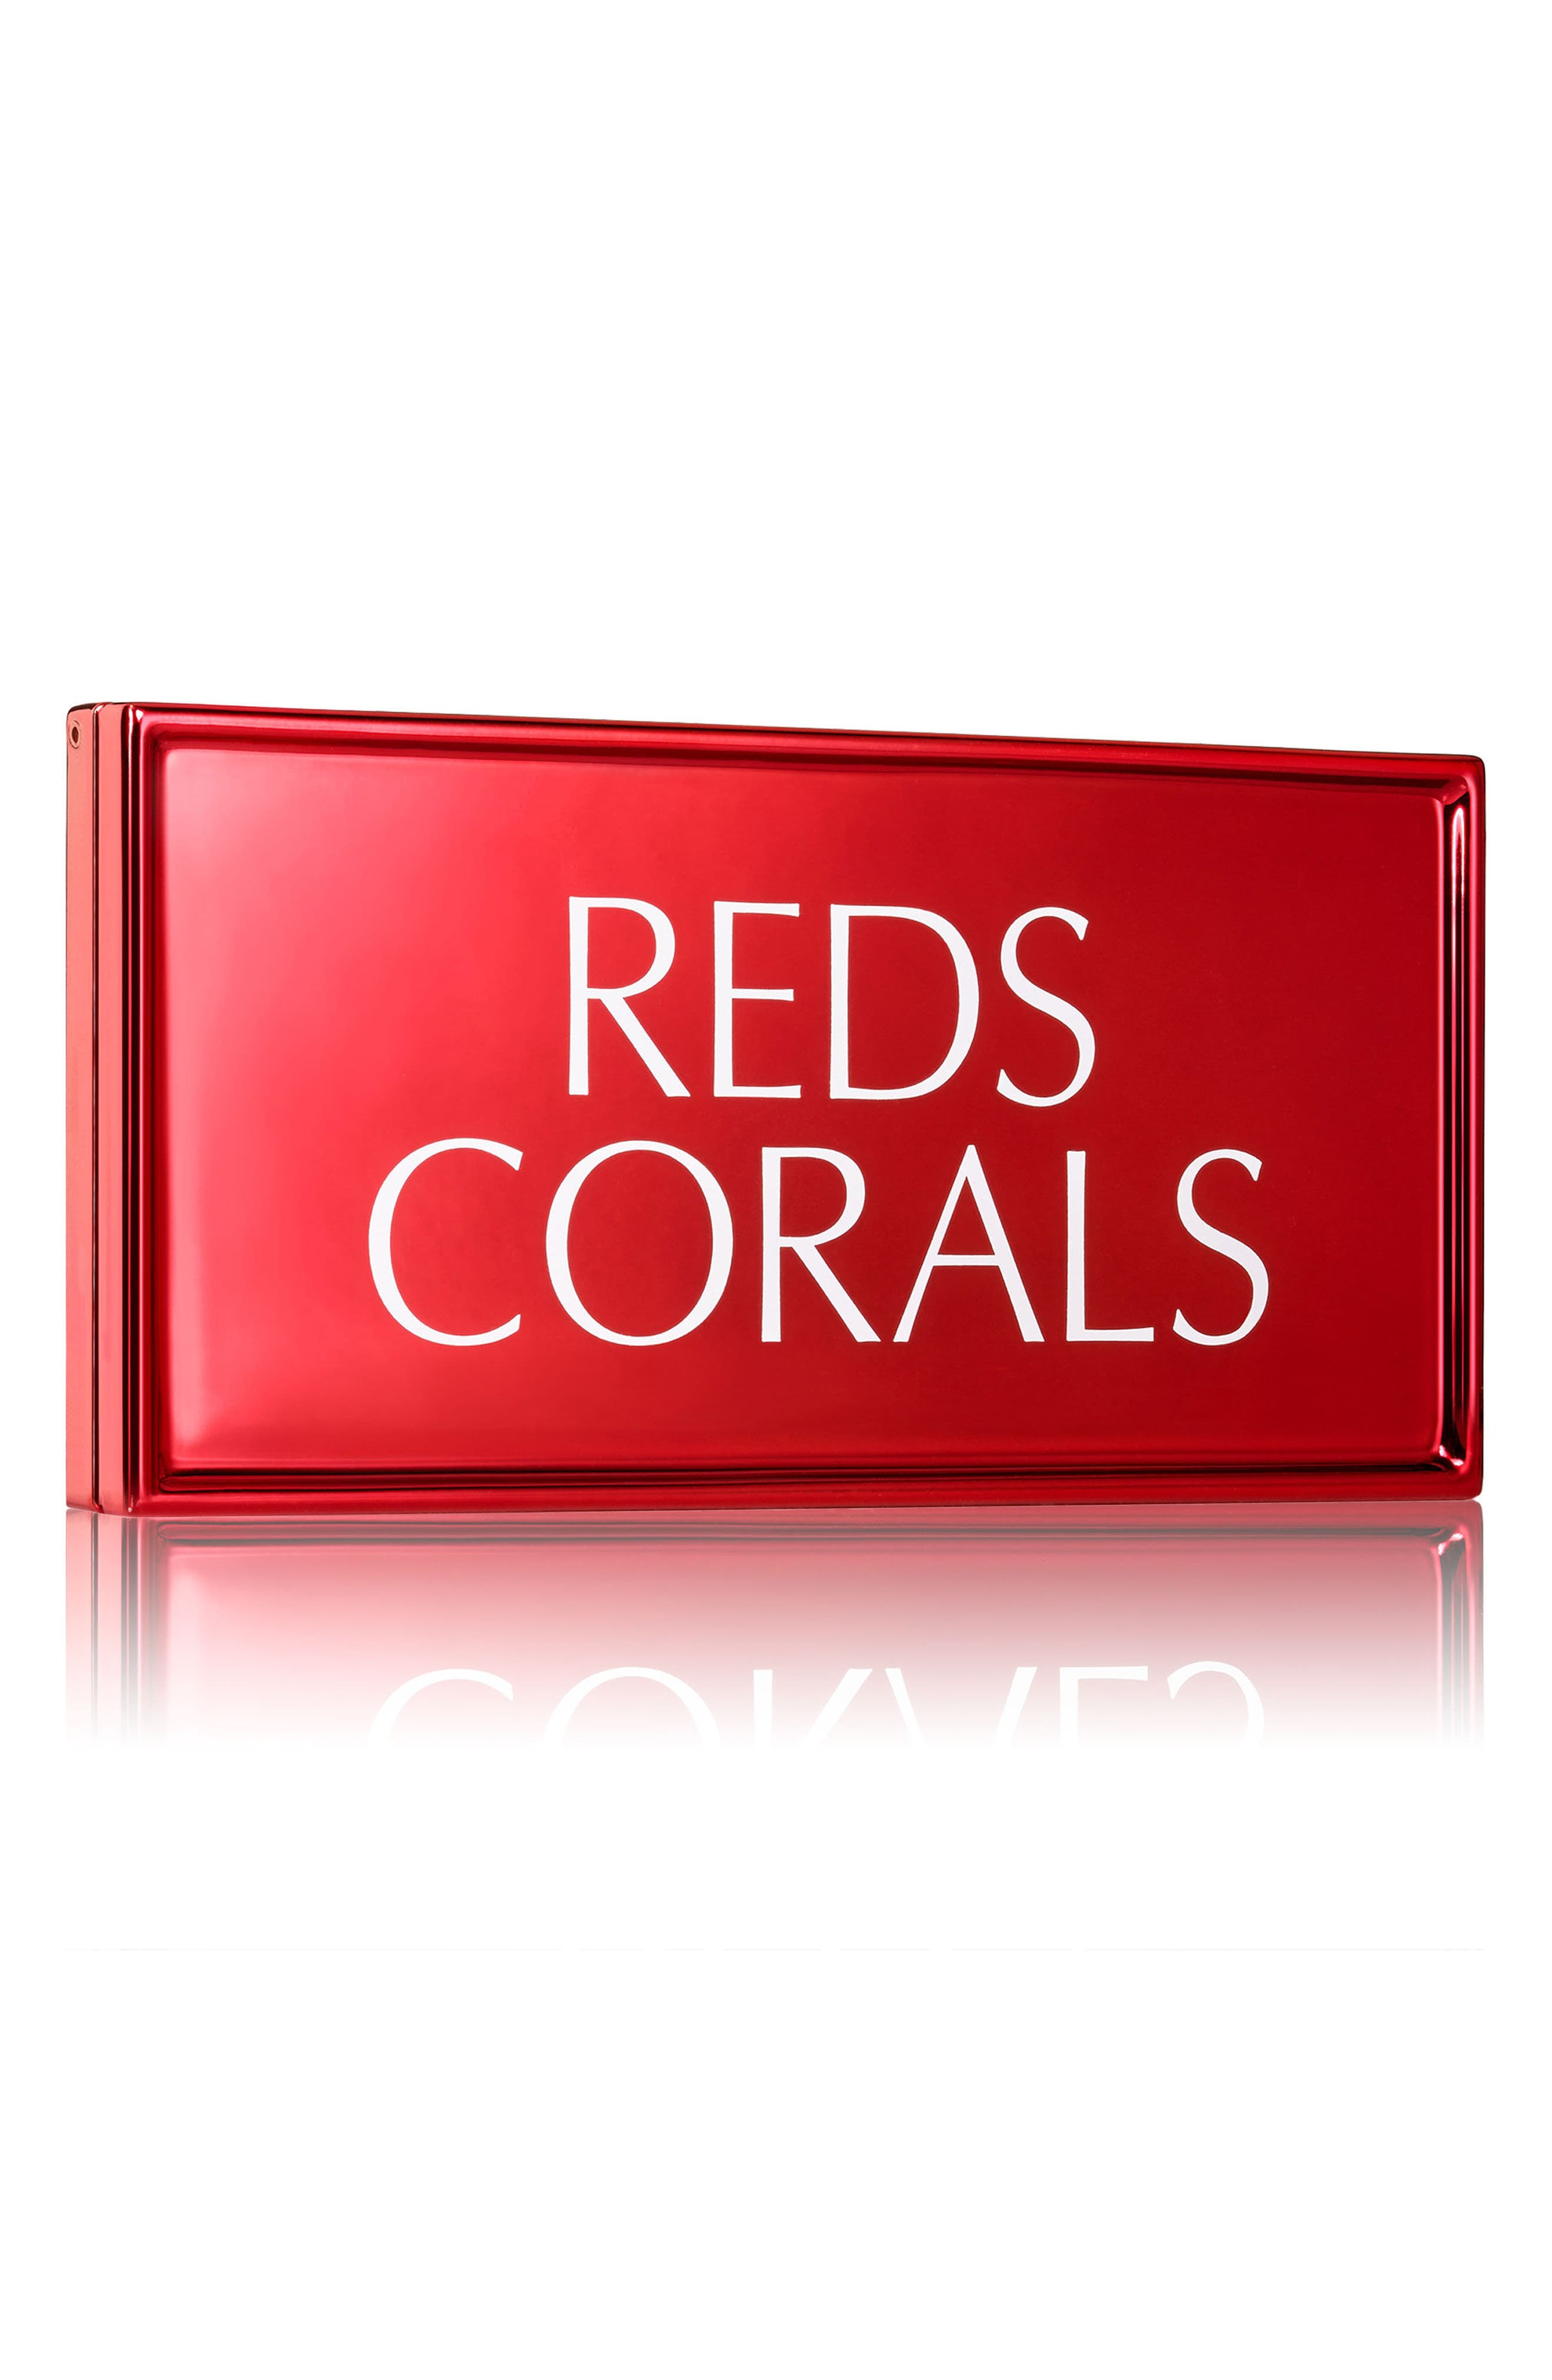 Red + Corals Lip Palette,                             Alternate thumbnail 3, color,                             No Color